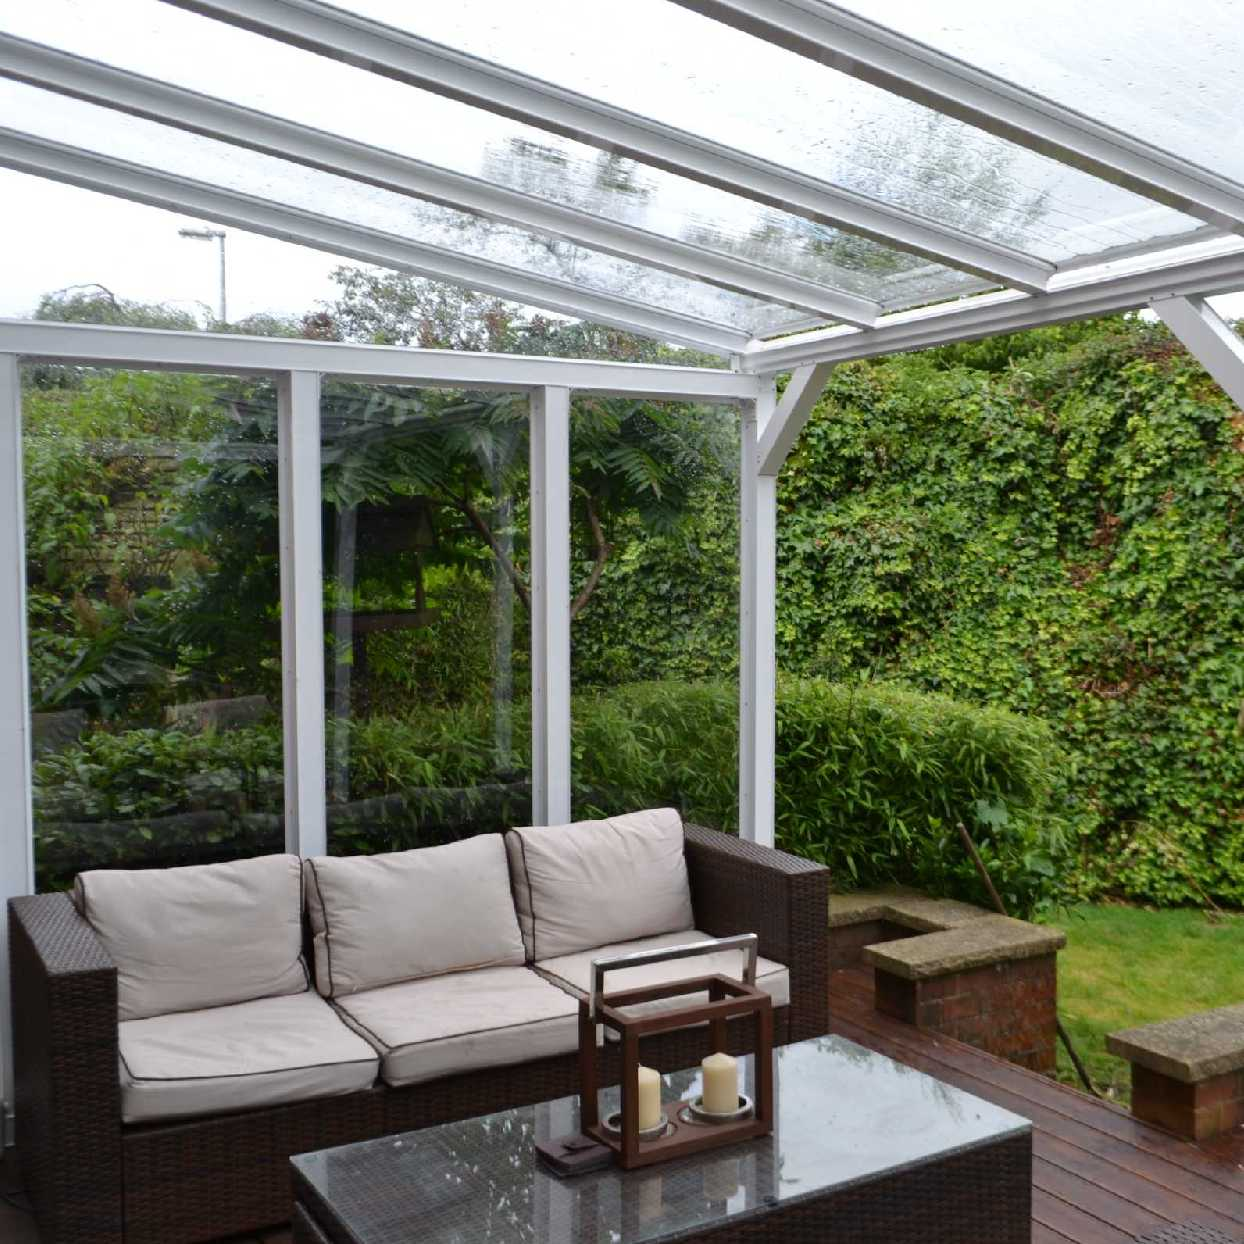 Great selection of Omega Smart White Lean-To Canopy with 16mm Polycarbonate Glazing - 9.2m (W) x 4.0m (P), (5) Supporting Posts